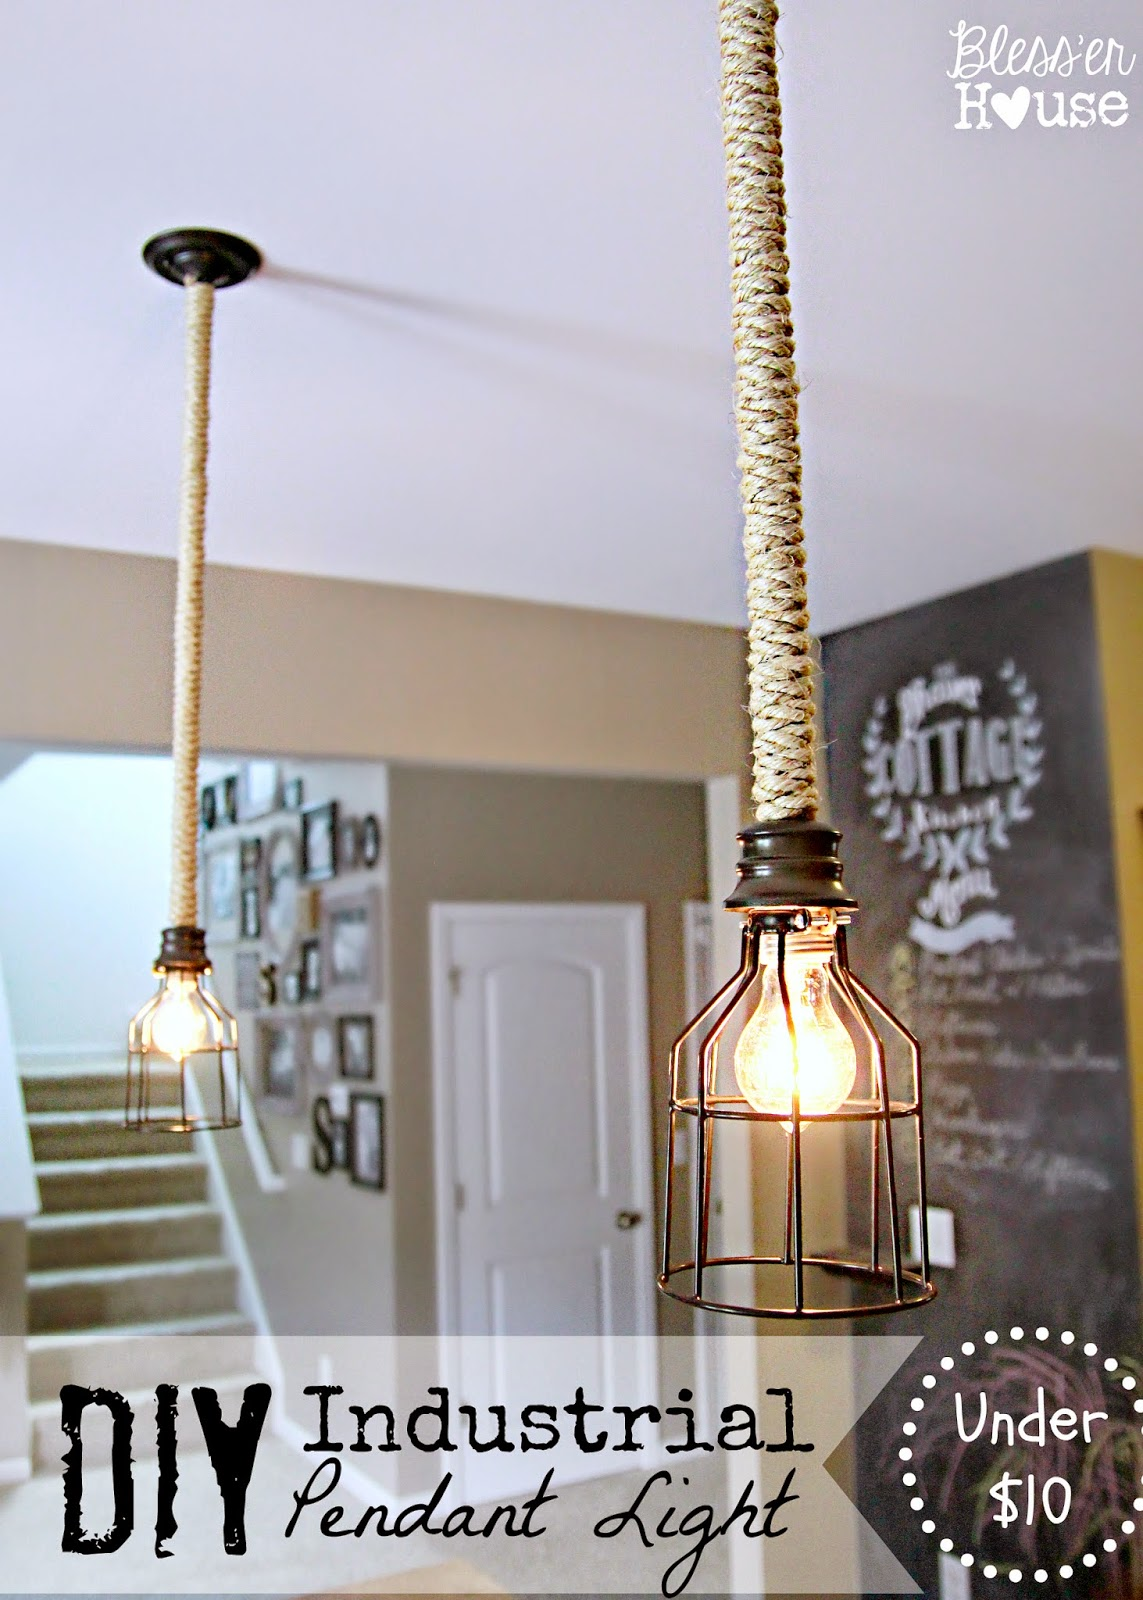 Diy Pendant Lighting Do It Yourself Blesser House Diy Industrial Pendant Light For Under 10 Blesser House